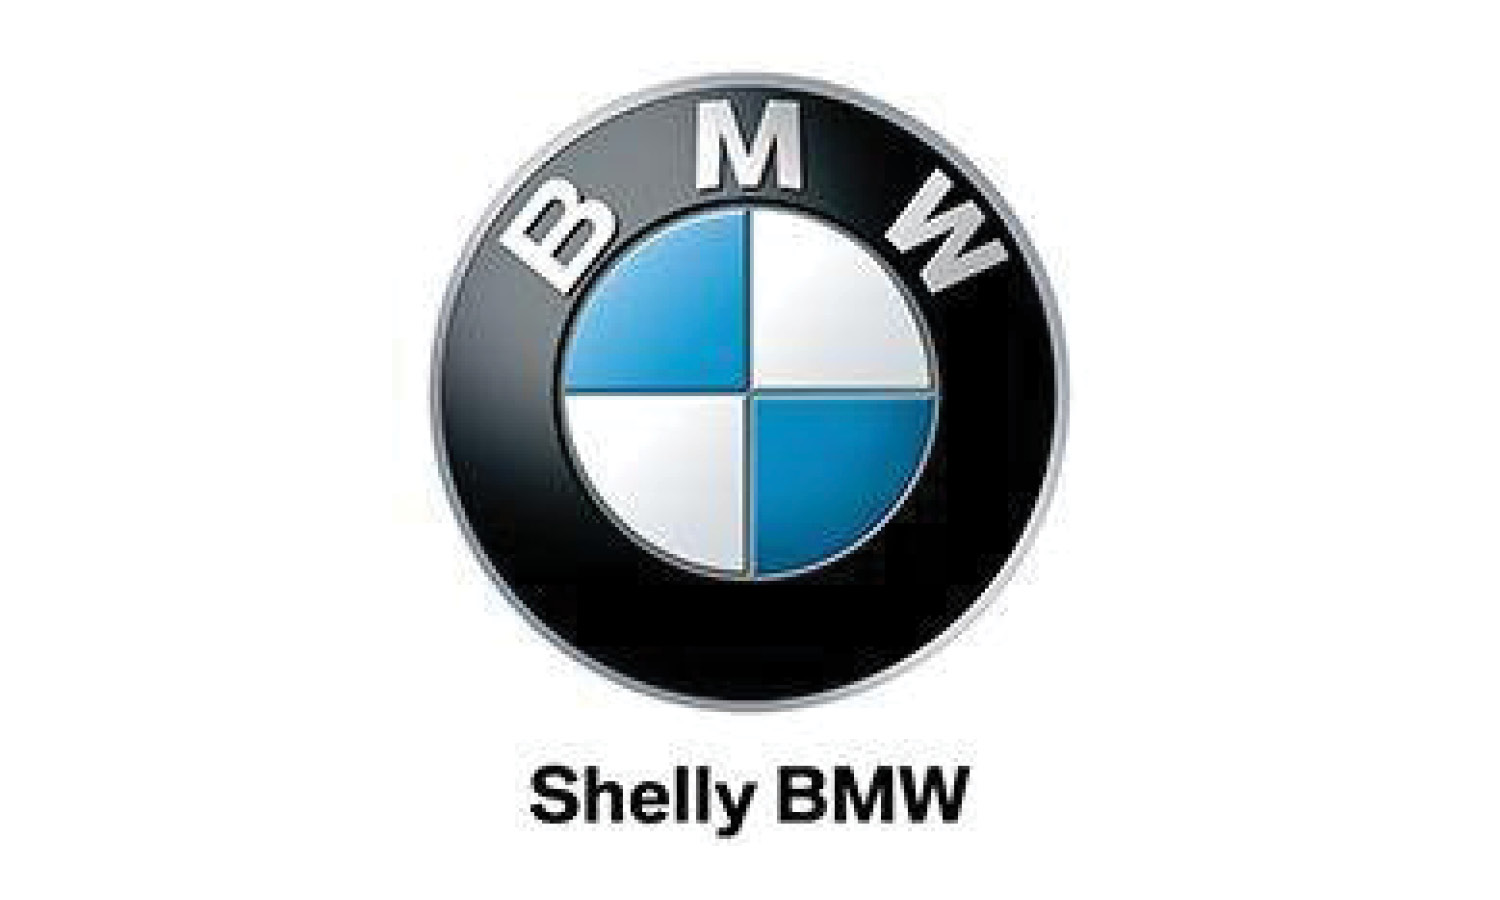 Shelly BMW